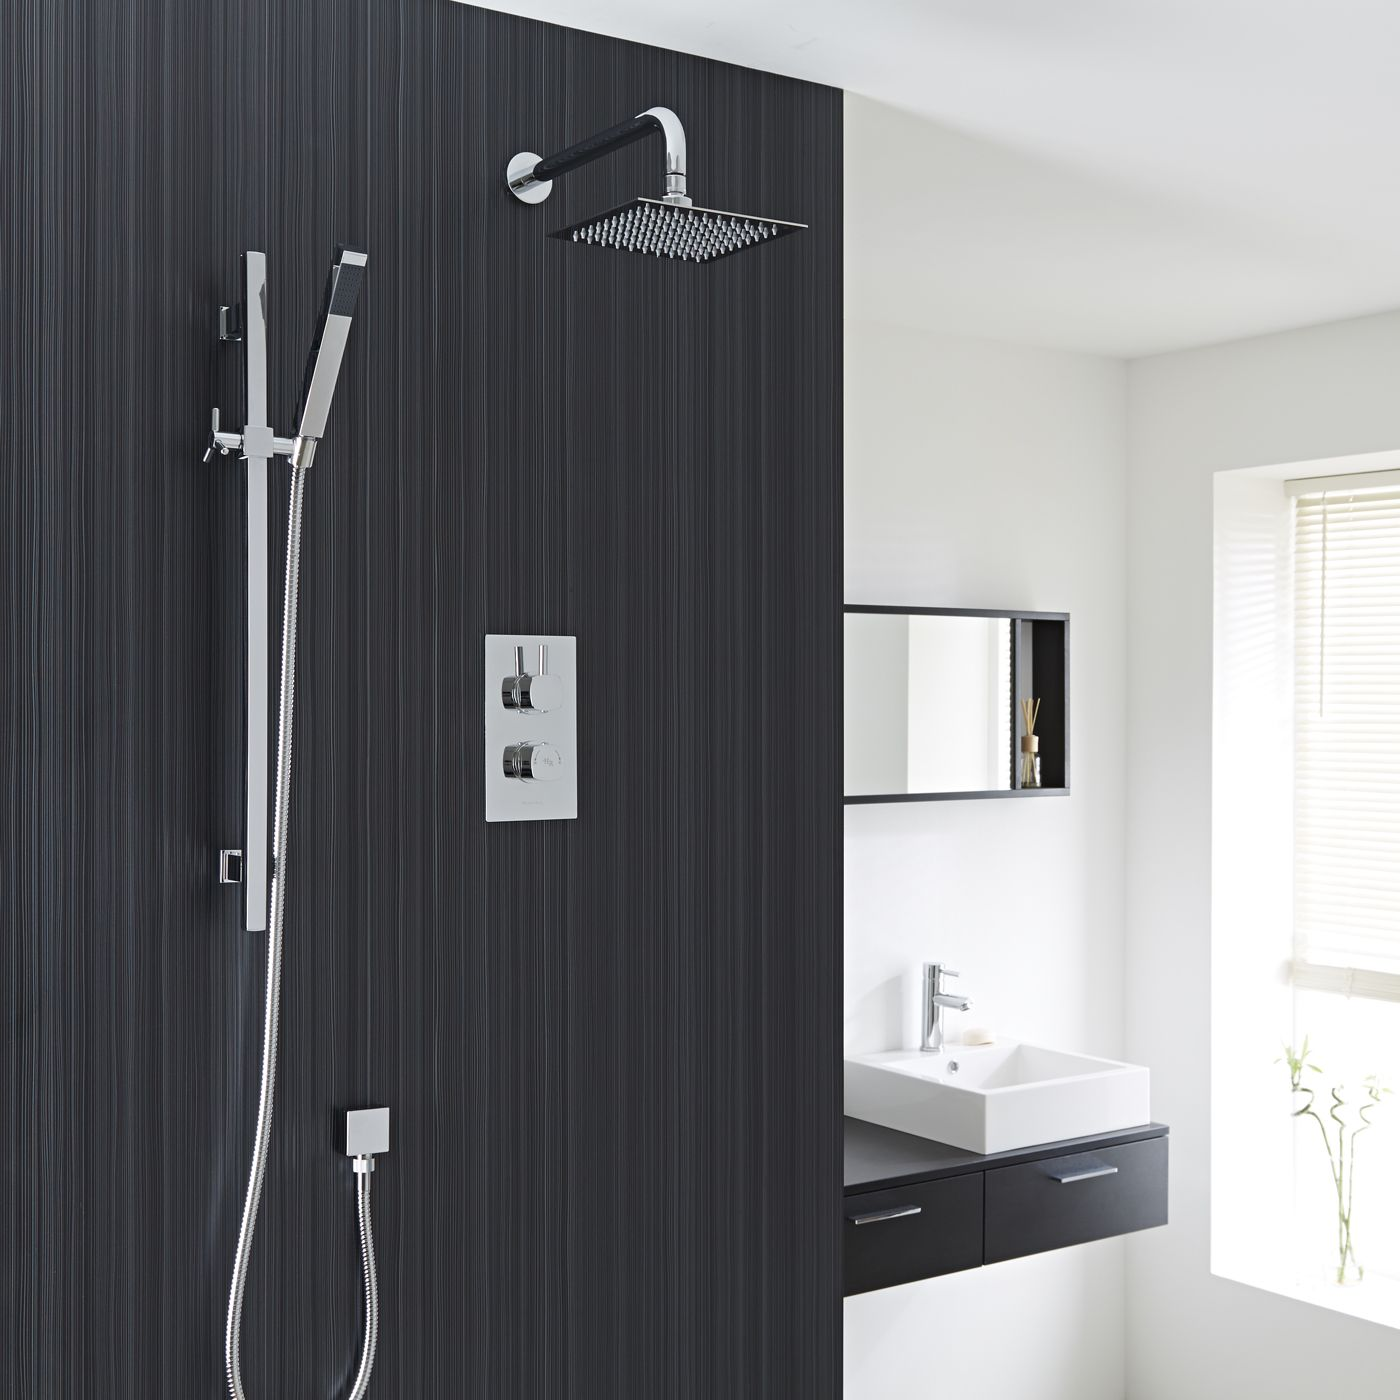 "Kia/Jule Twin Concealed Thermostatic Shower With Diverter, 8"" Square Head and Slider Rail Kit"